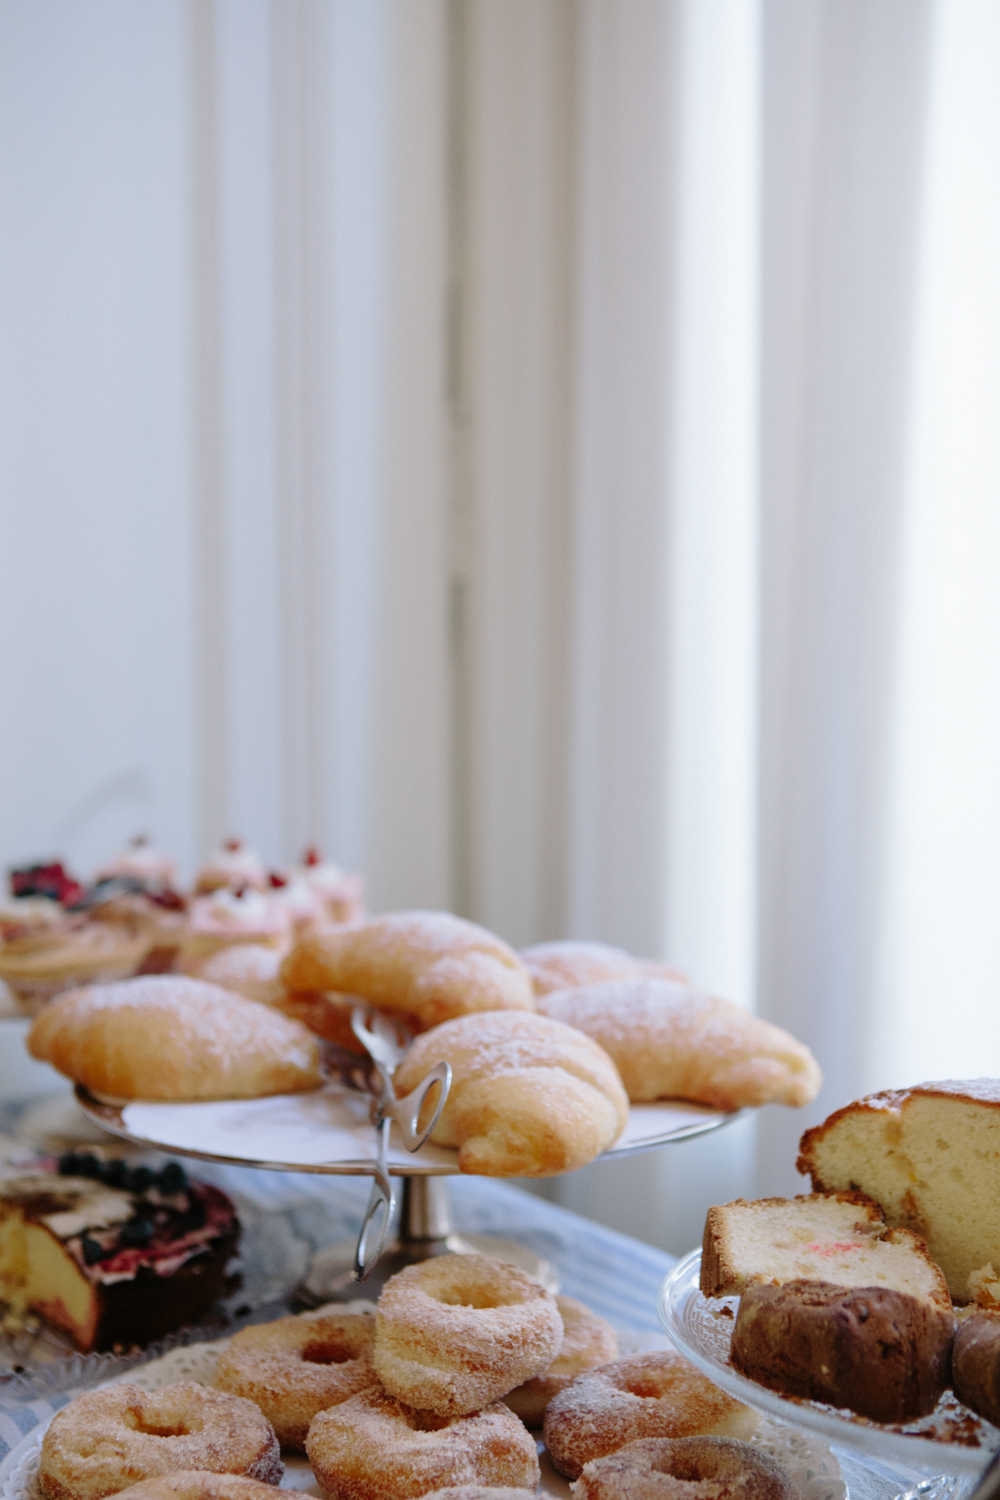 Part of the daily breakfast spread at Maison Tofani, included in the stay